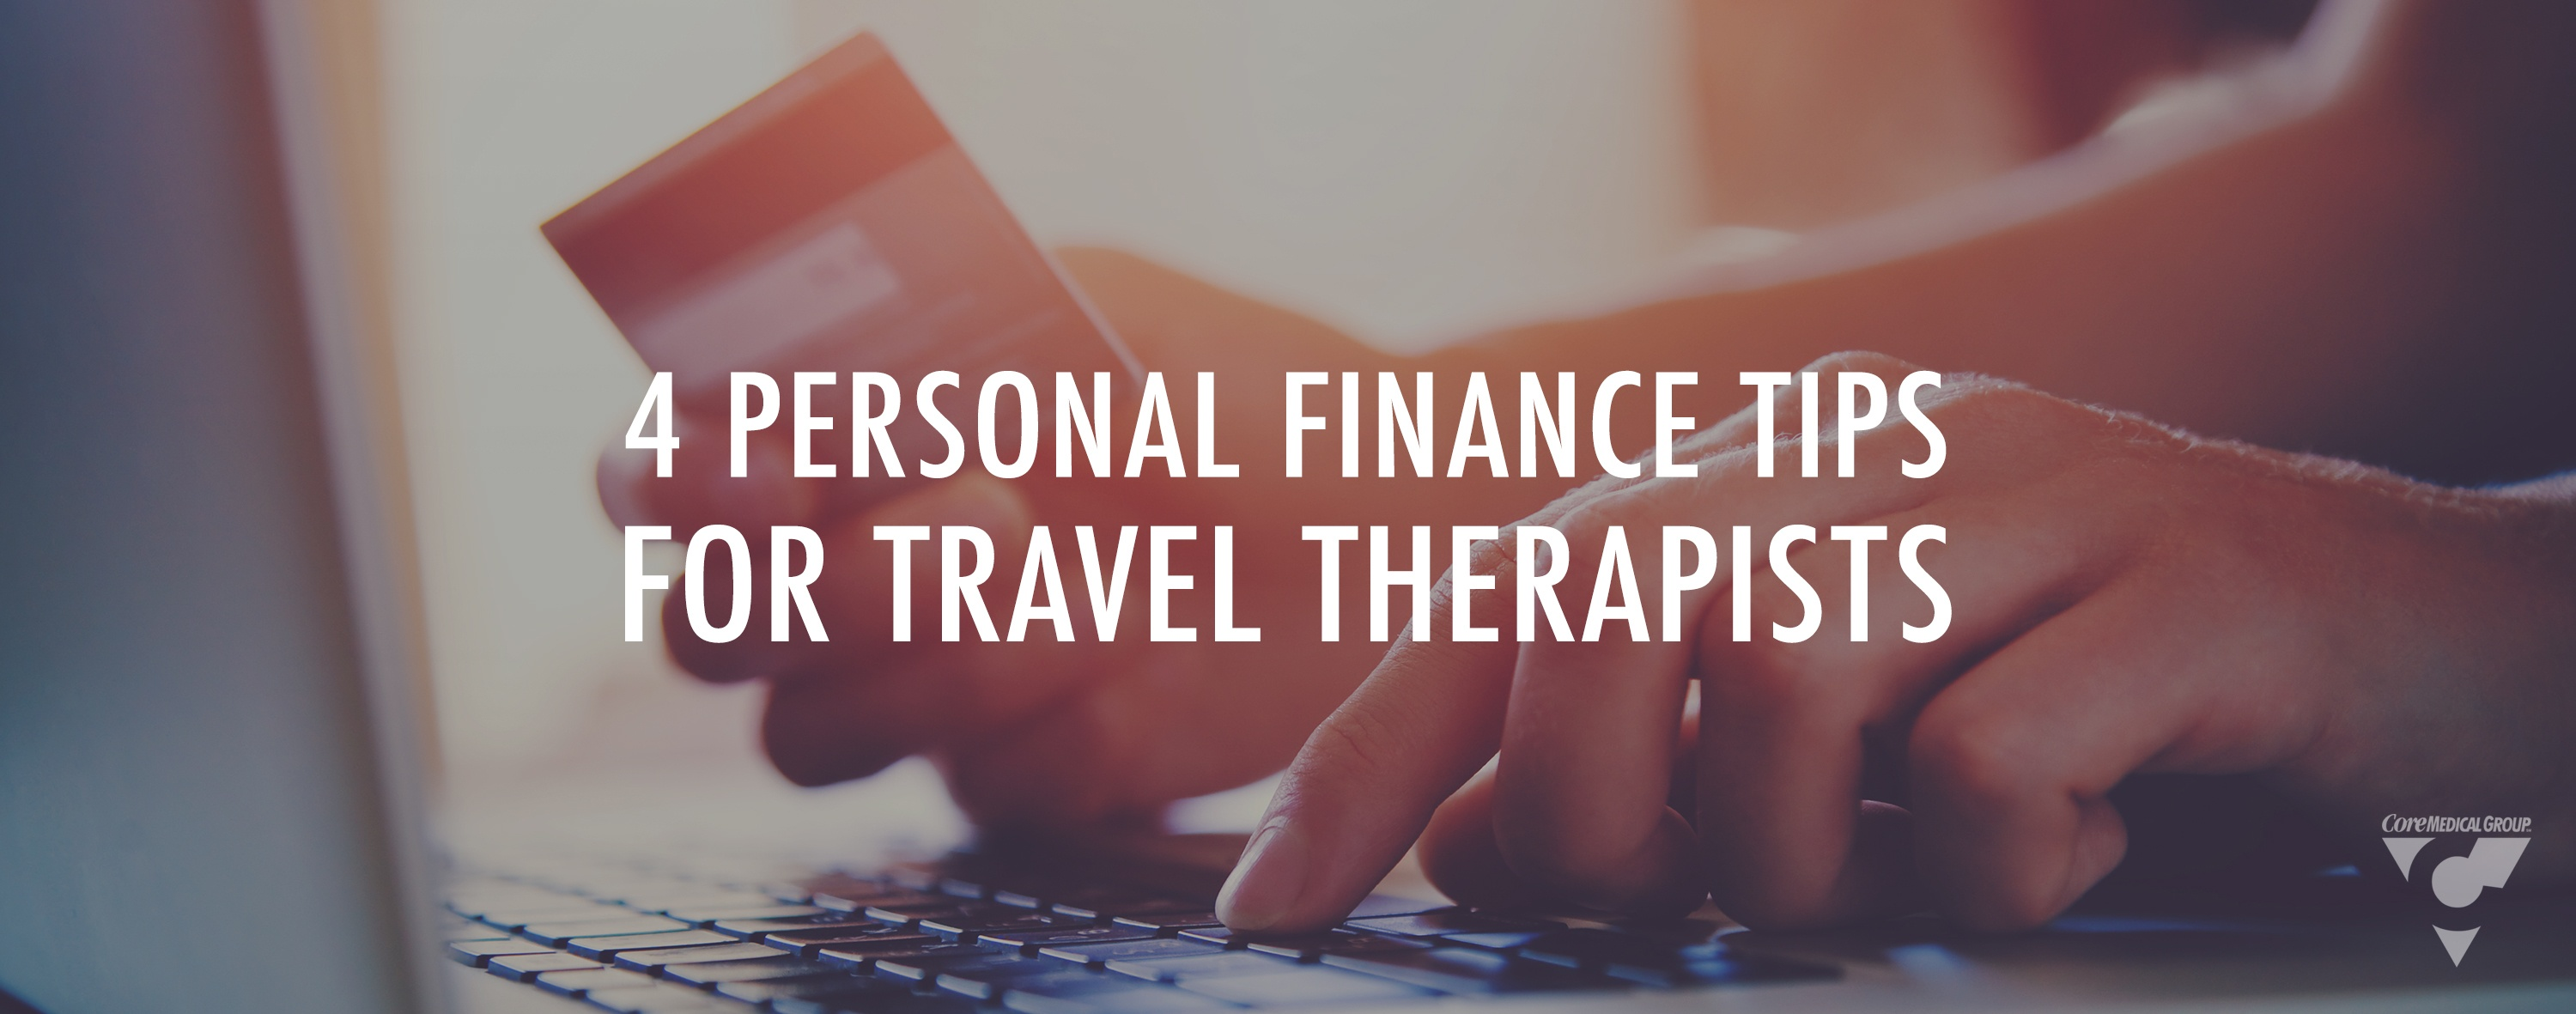 four personal finance tips for travel therapists money management